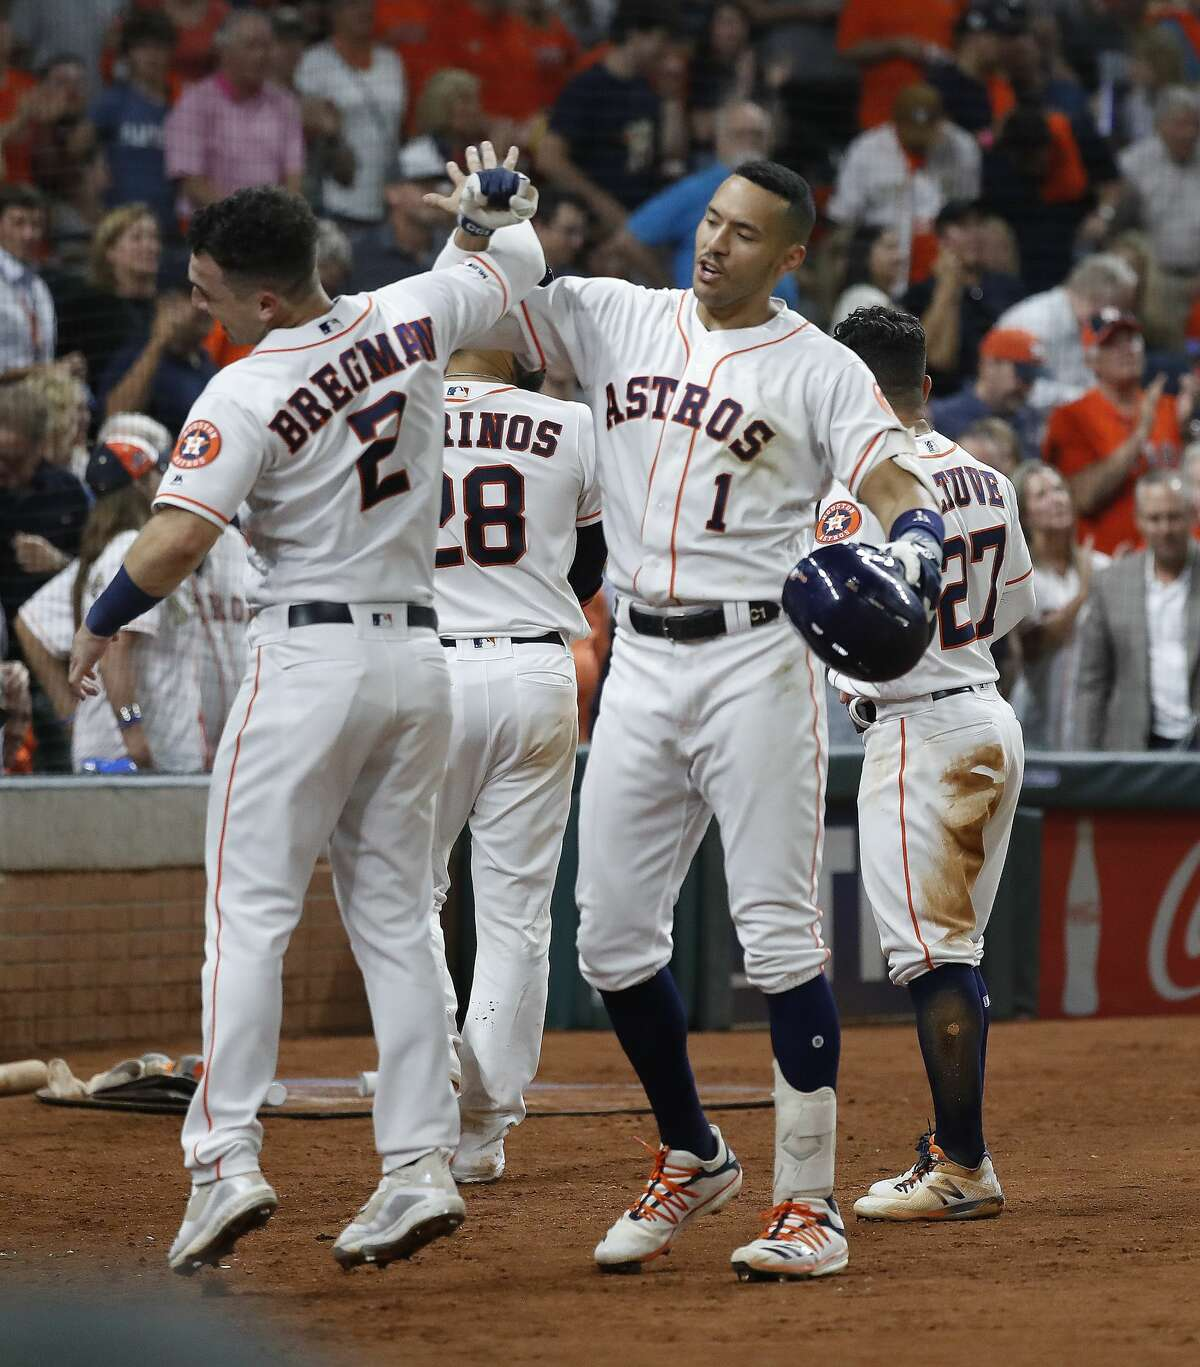 Houston Astros Carlos Correa (1) celebrates his home run with Alex Bregman (2)during the sixth inning of an MLB baseball game at Minute Maid Park, Tuesday, August 6, 2019.